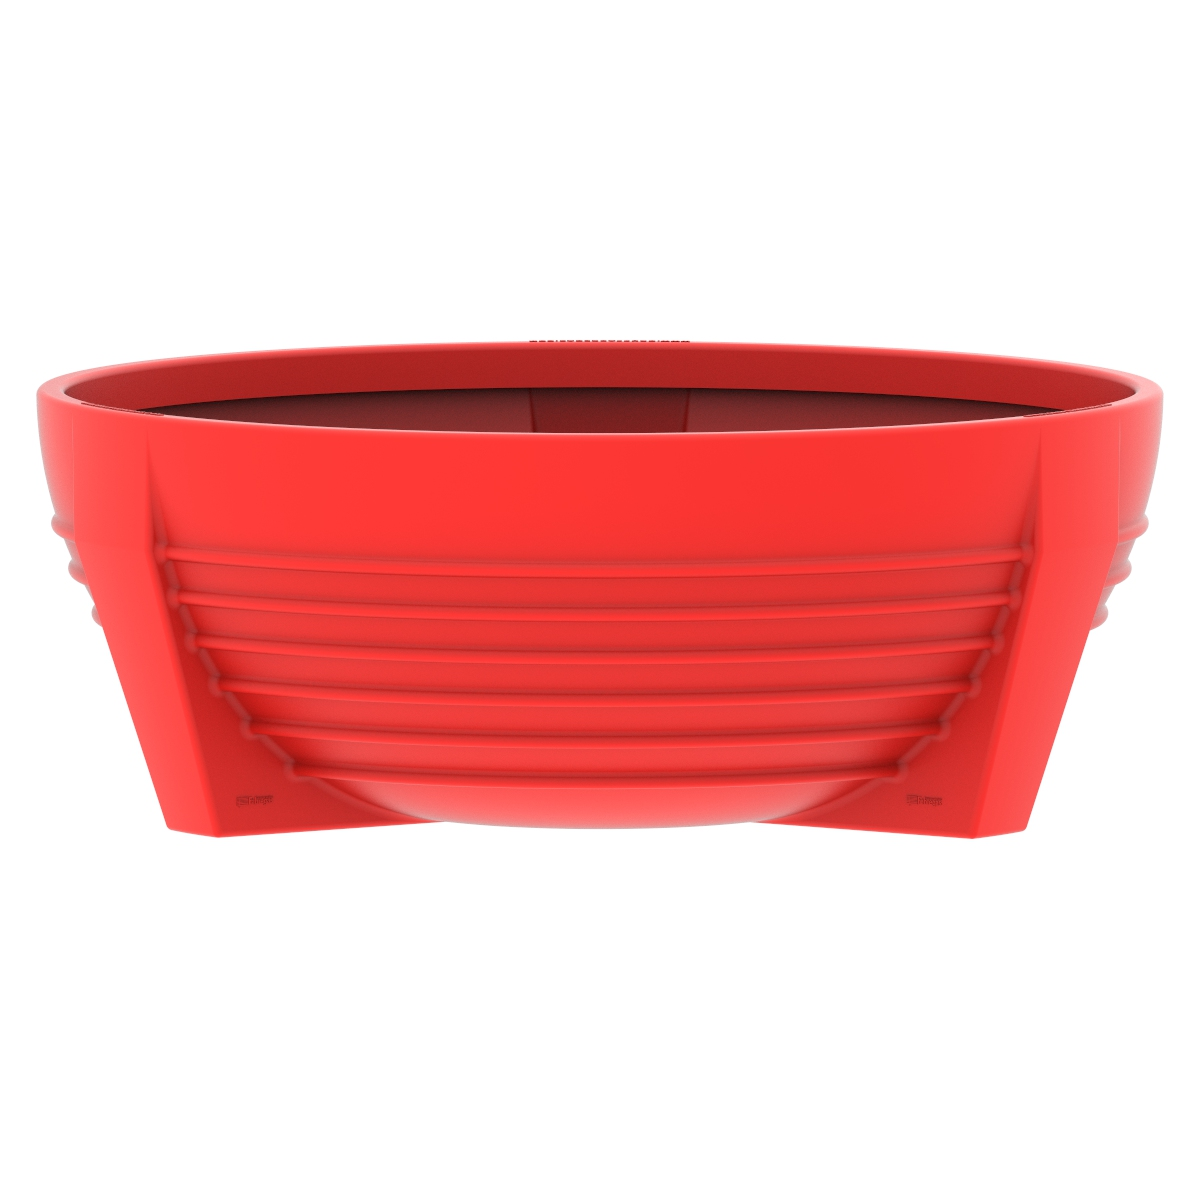 Red circular flower box of Polypropylene futura P-300